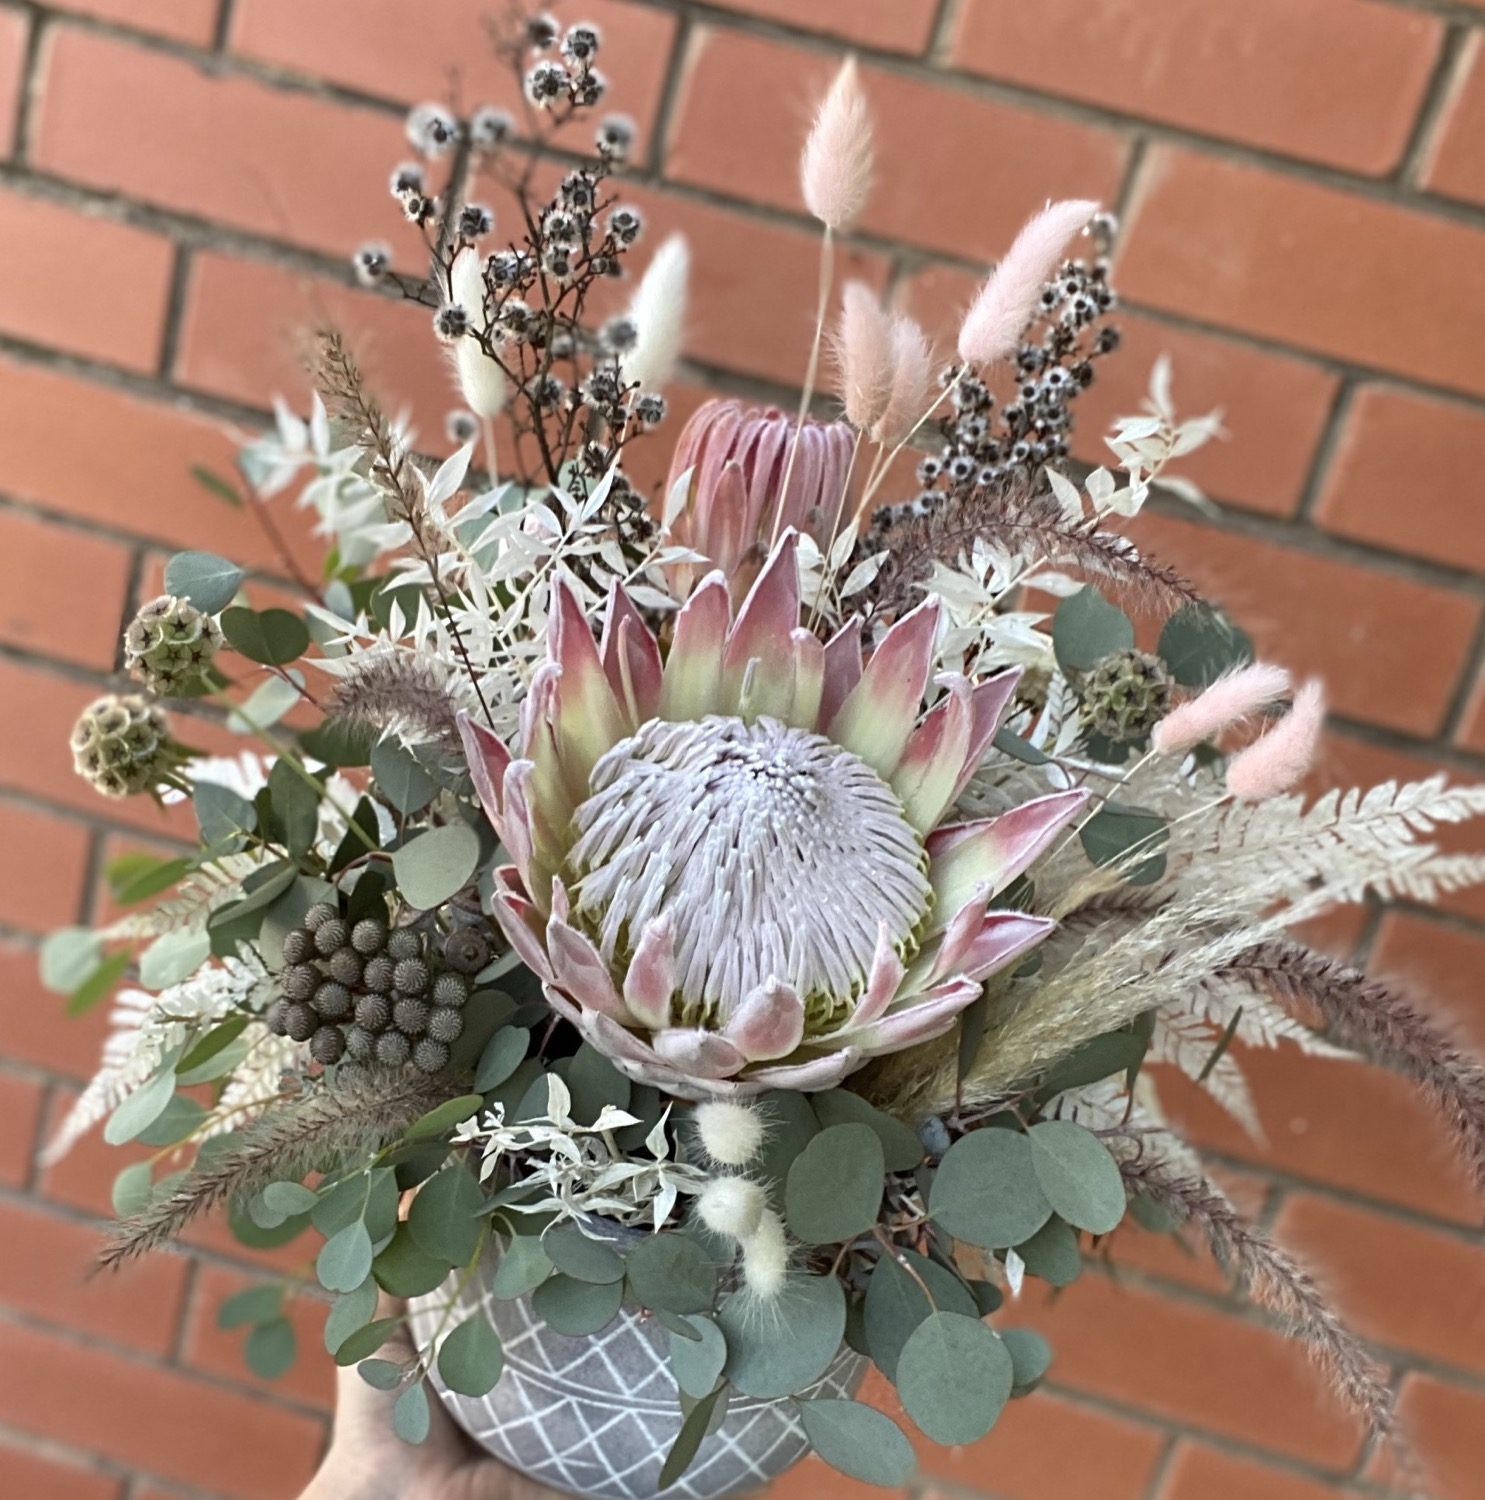 Dried floral work shop - 18th of january 2020 from 4-6pm